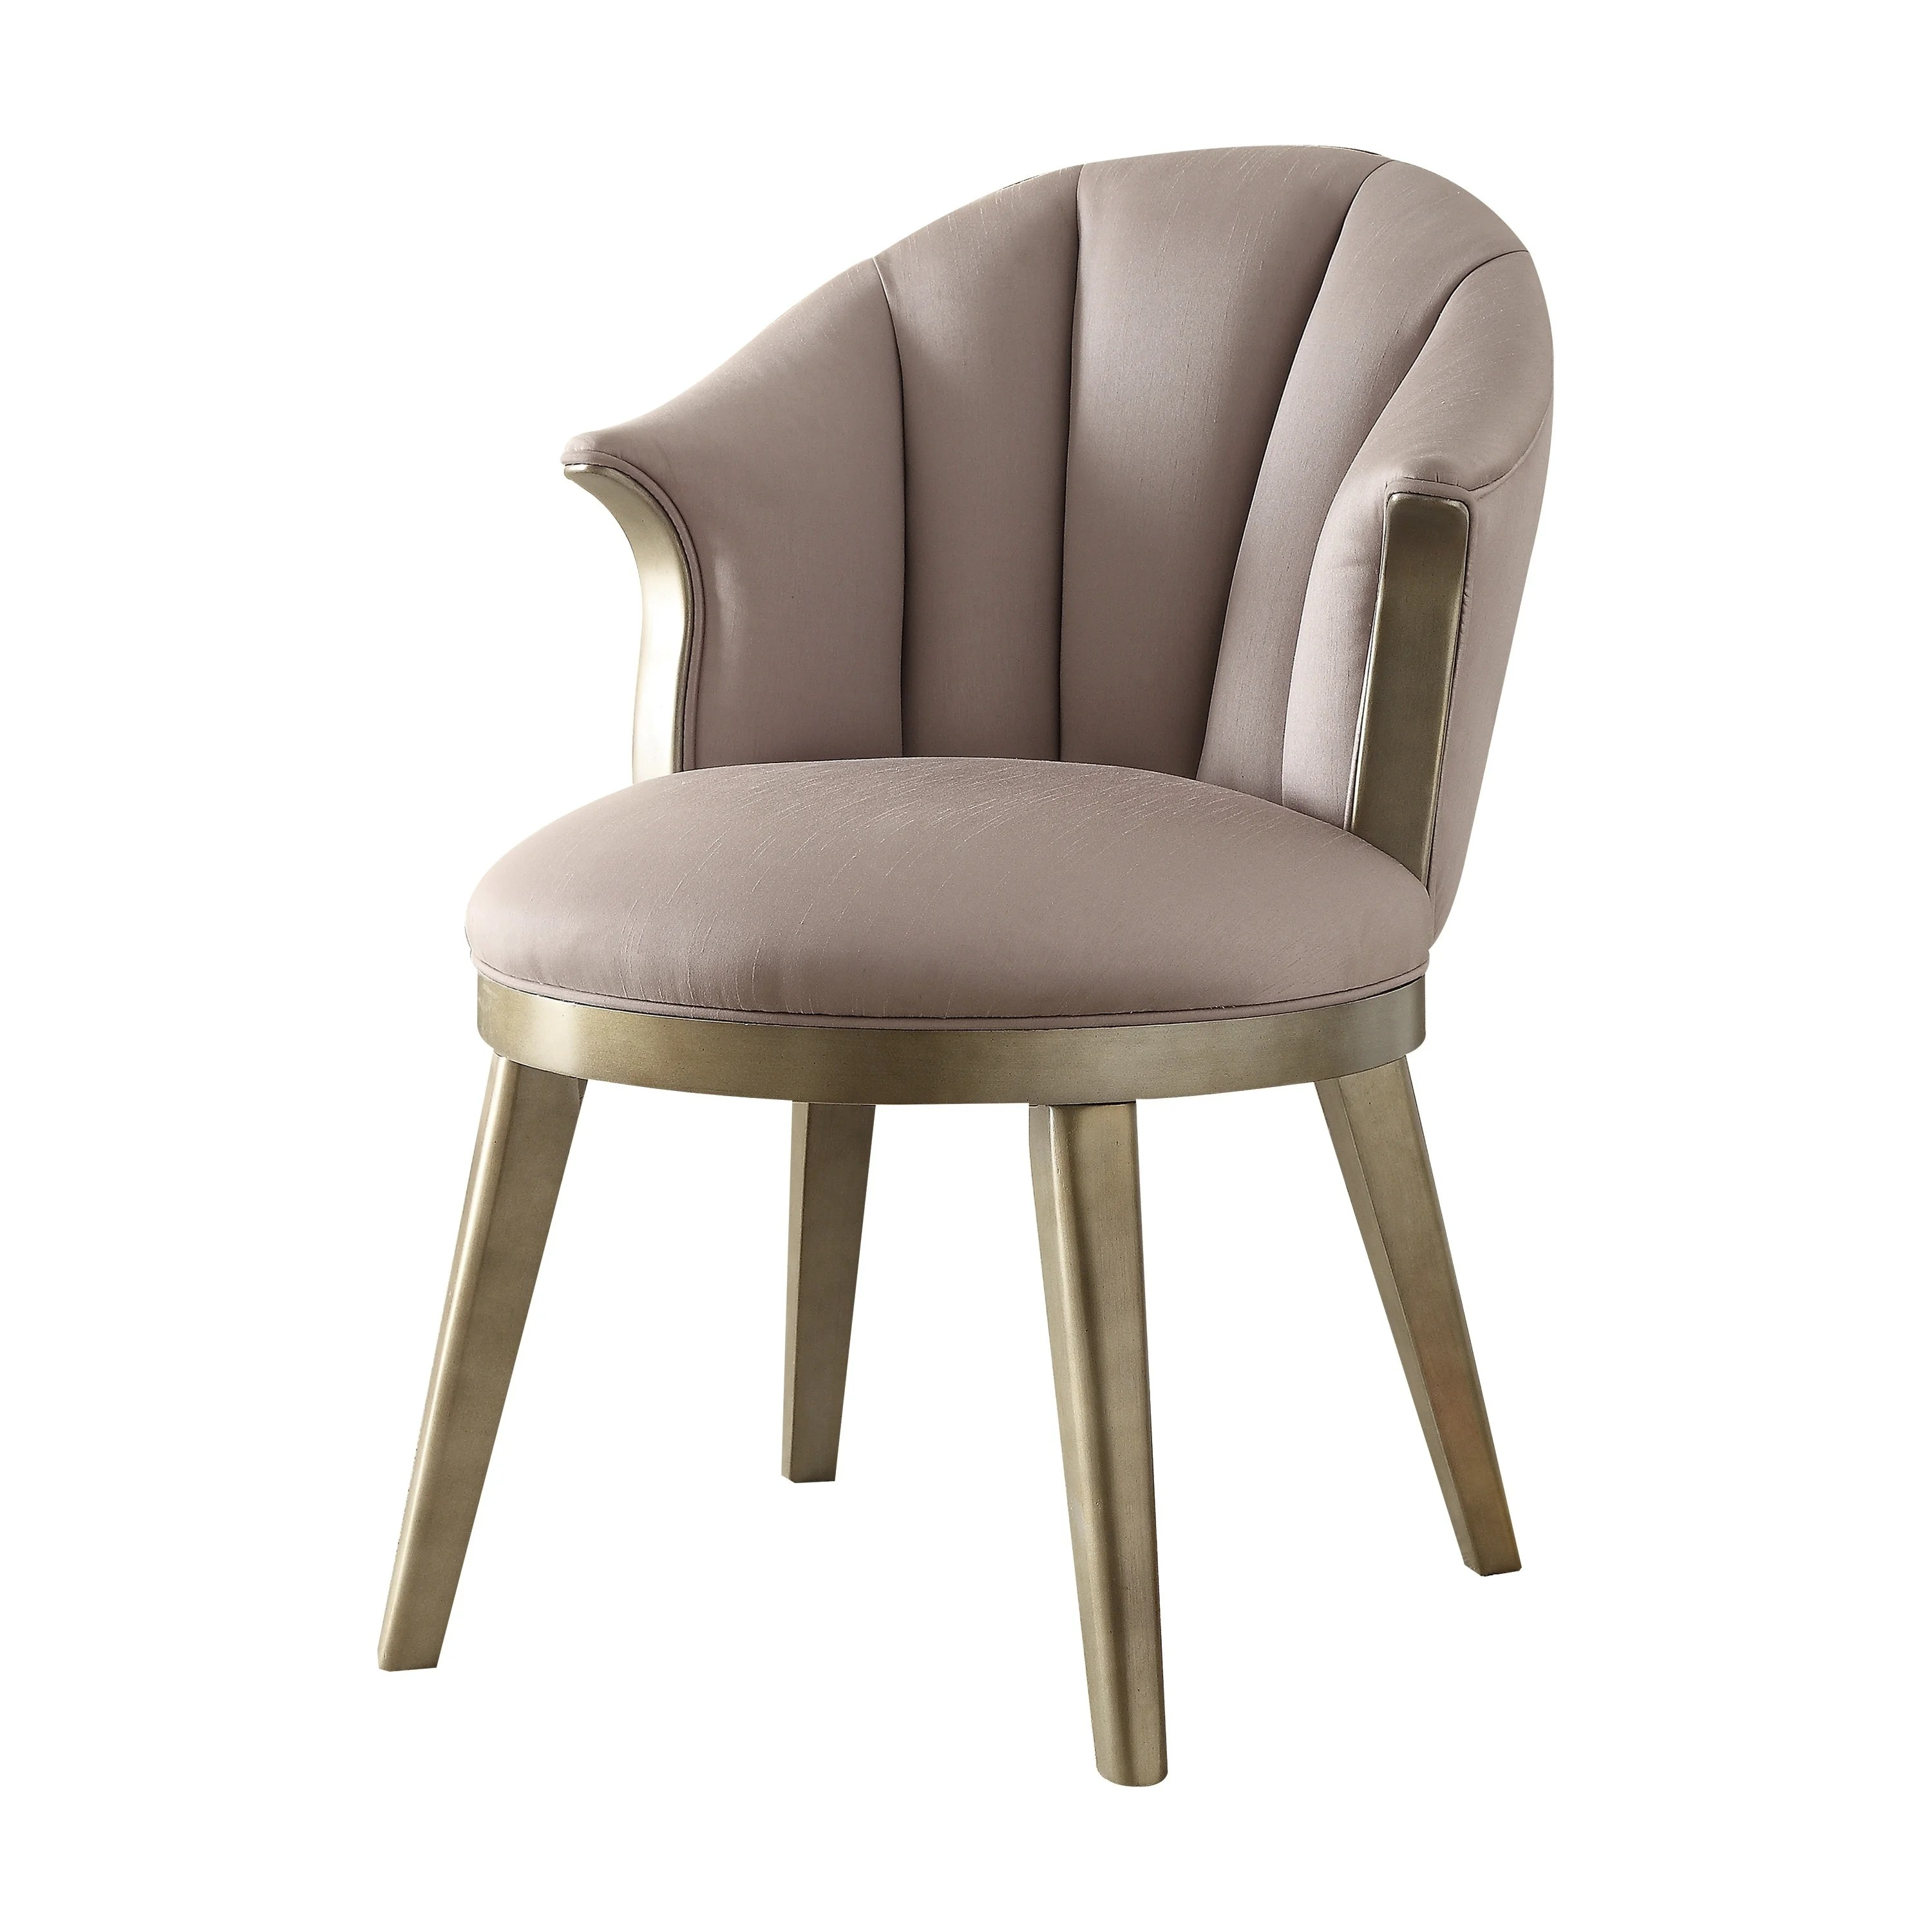 Shop Black Friday Deals On Acme Brecken Accent Chair In Light Lavender Fabric And Champagne Gold Overstock 18969202